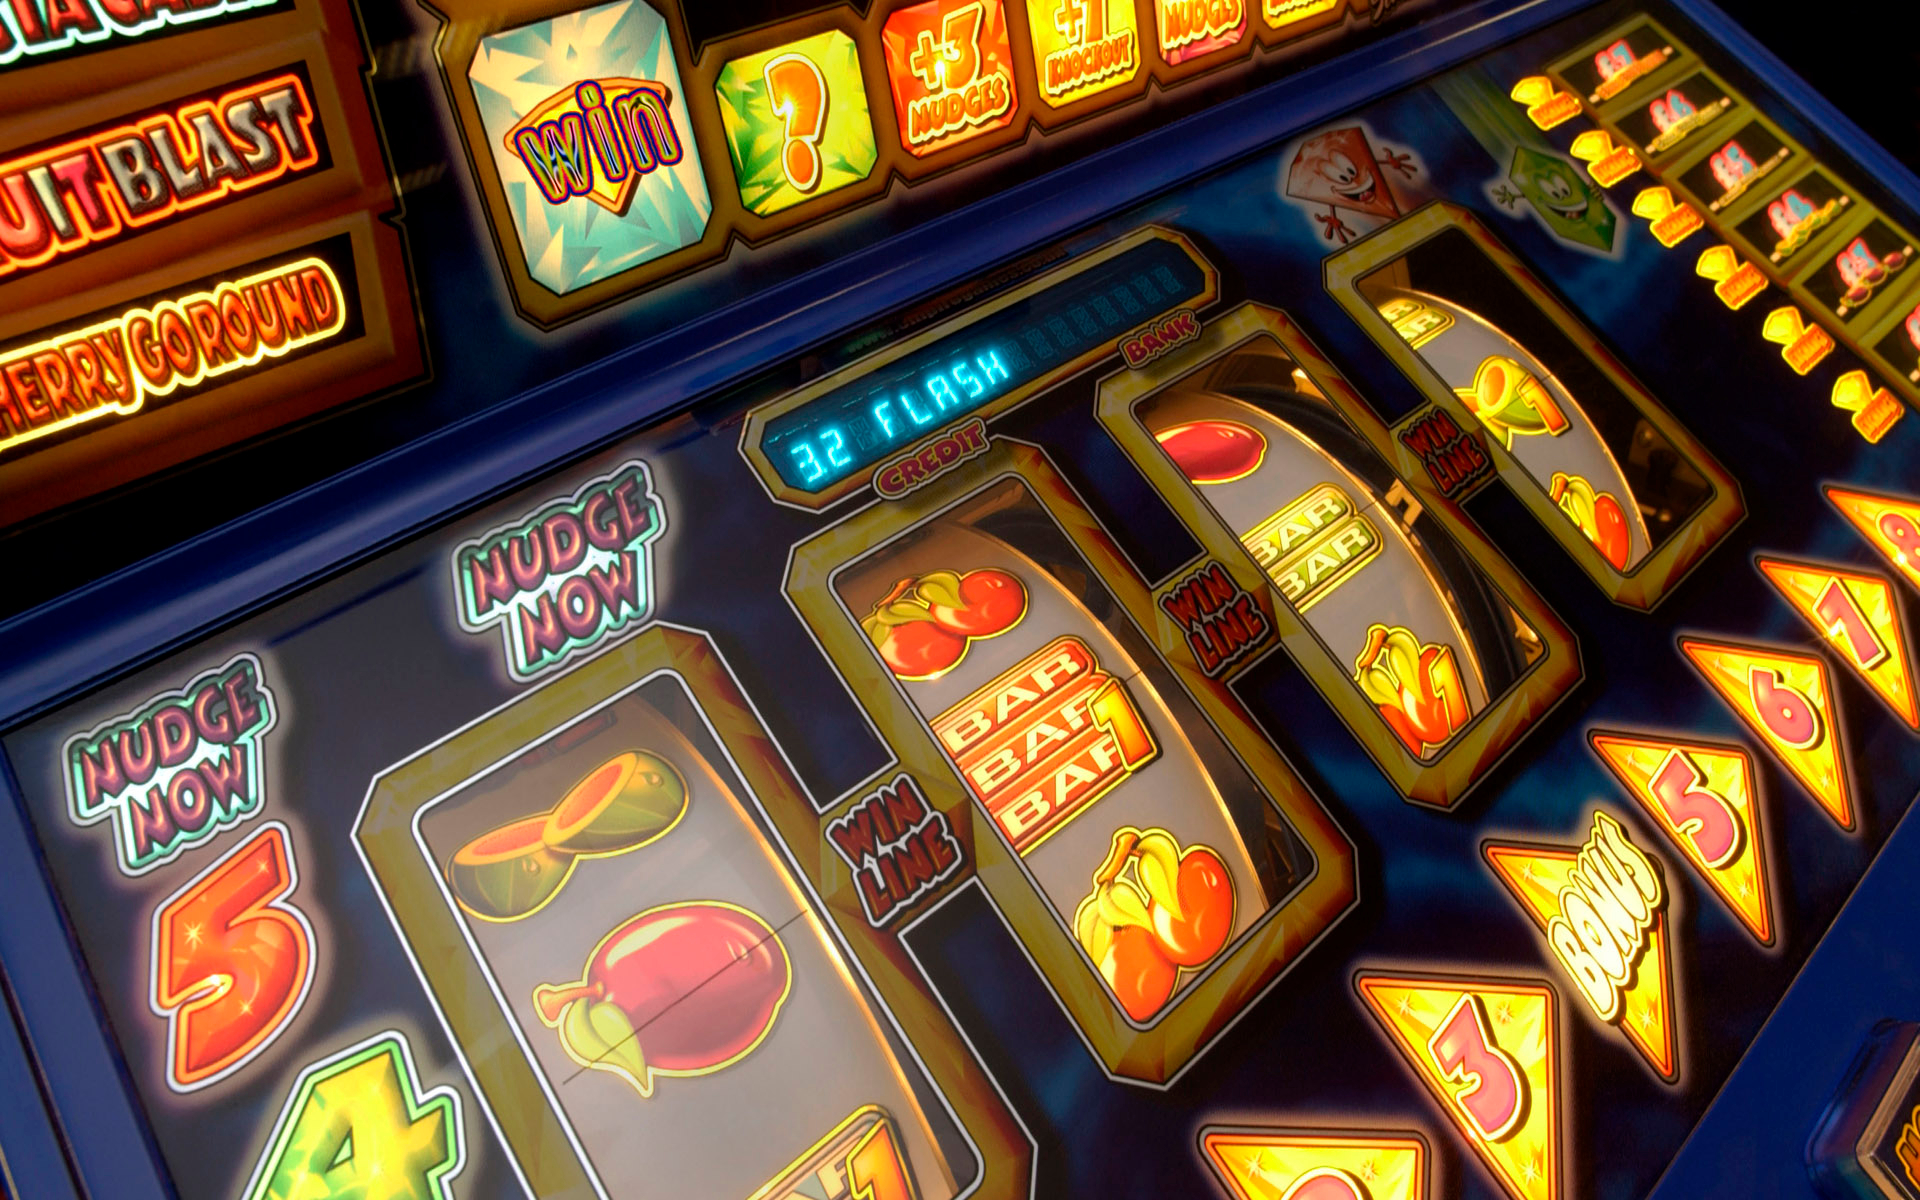 Giochi Gratis Slot Machine 5 Rulli